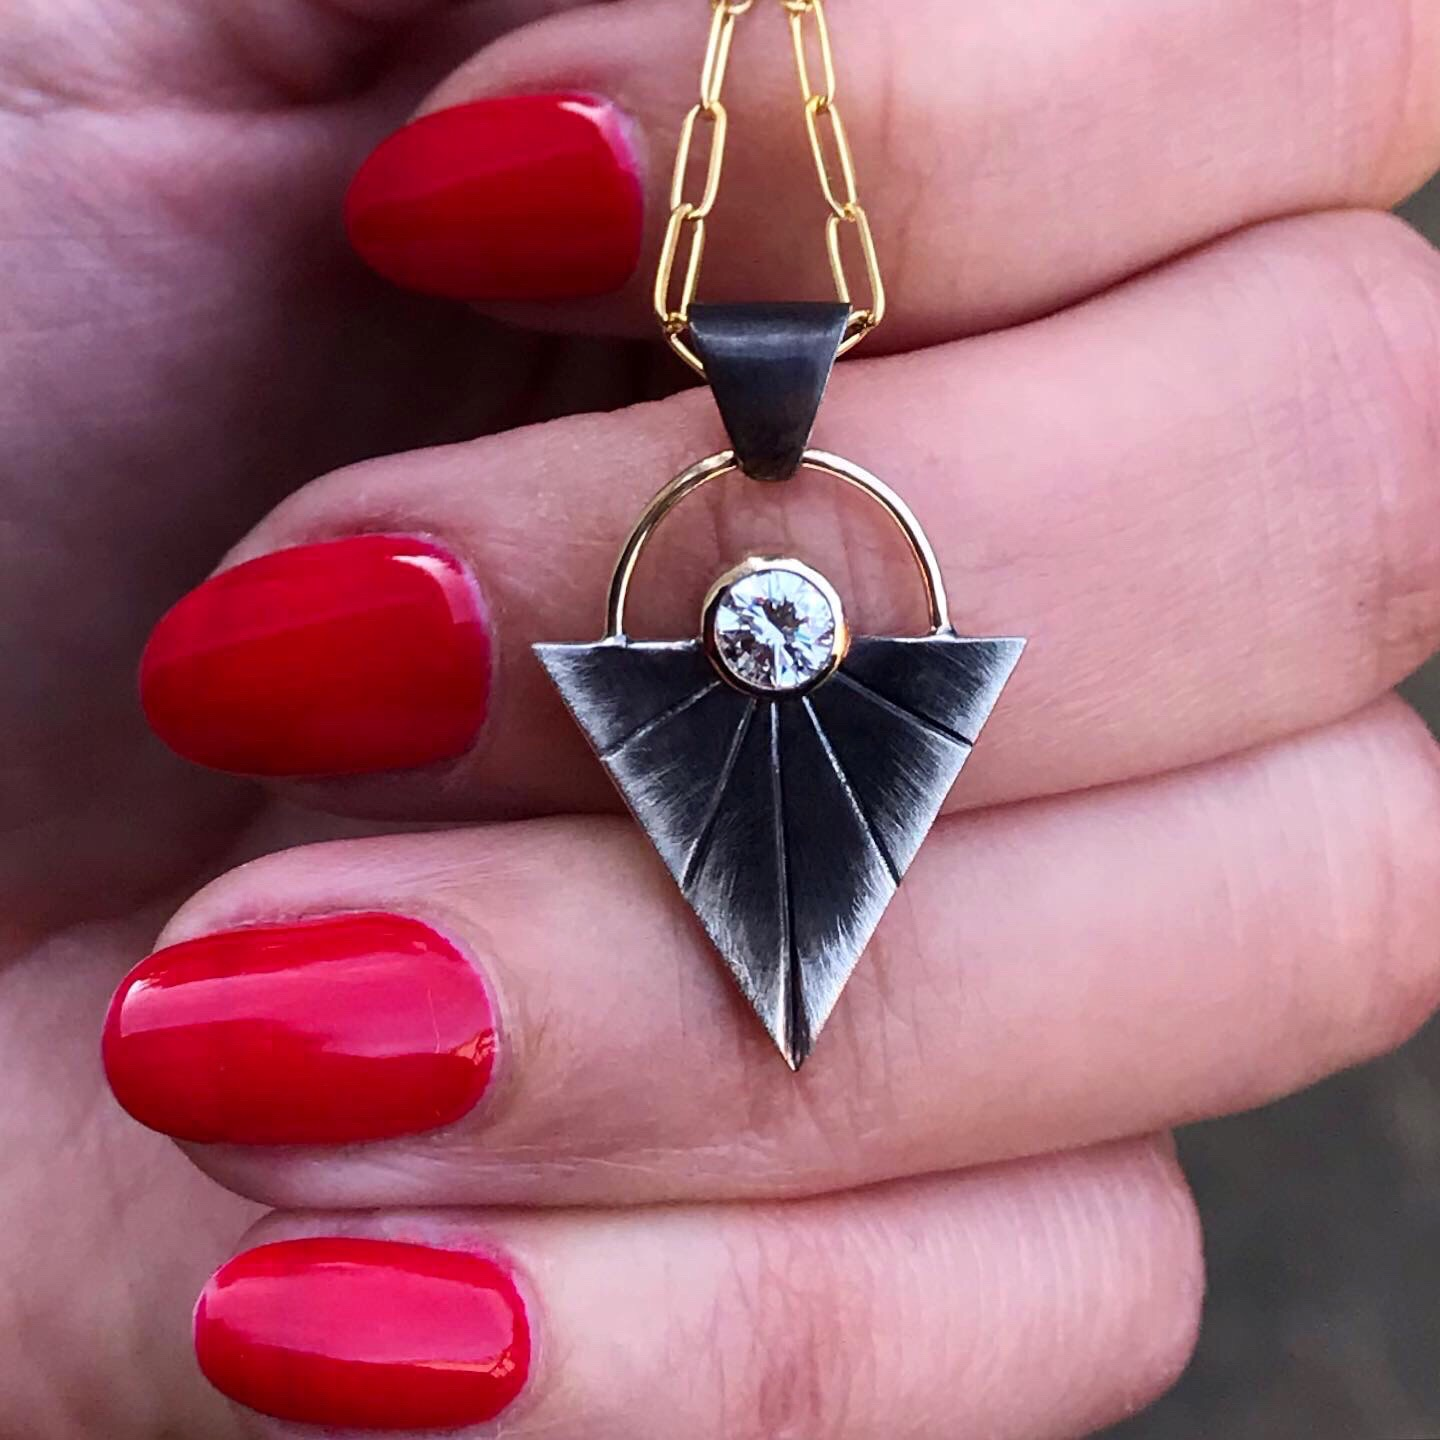 Heirloom Diamond Mixed Metals Pendant by Black Fawn Jewelry